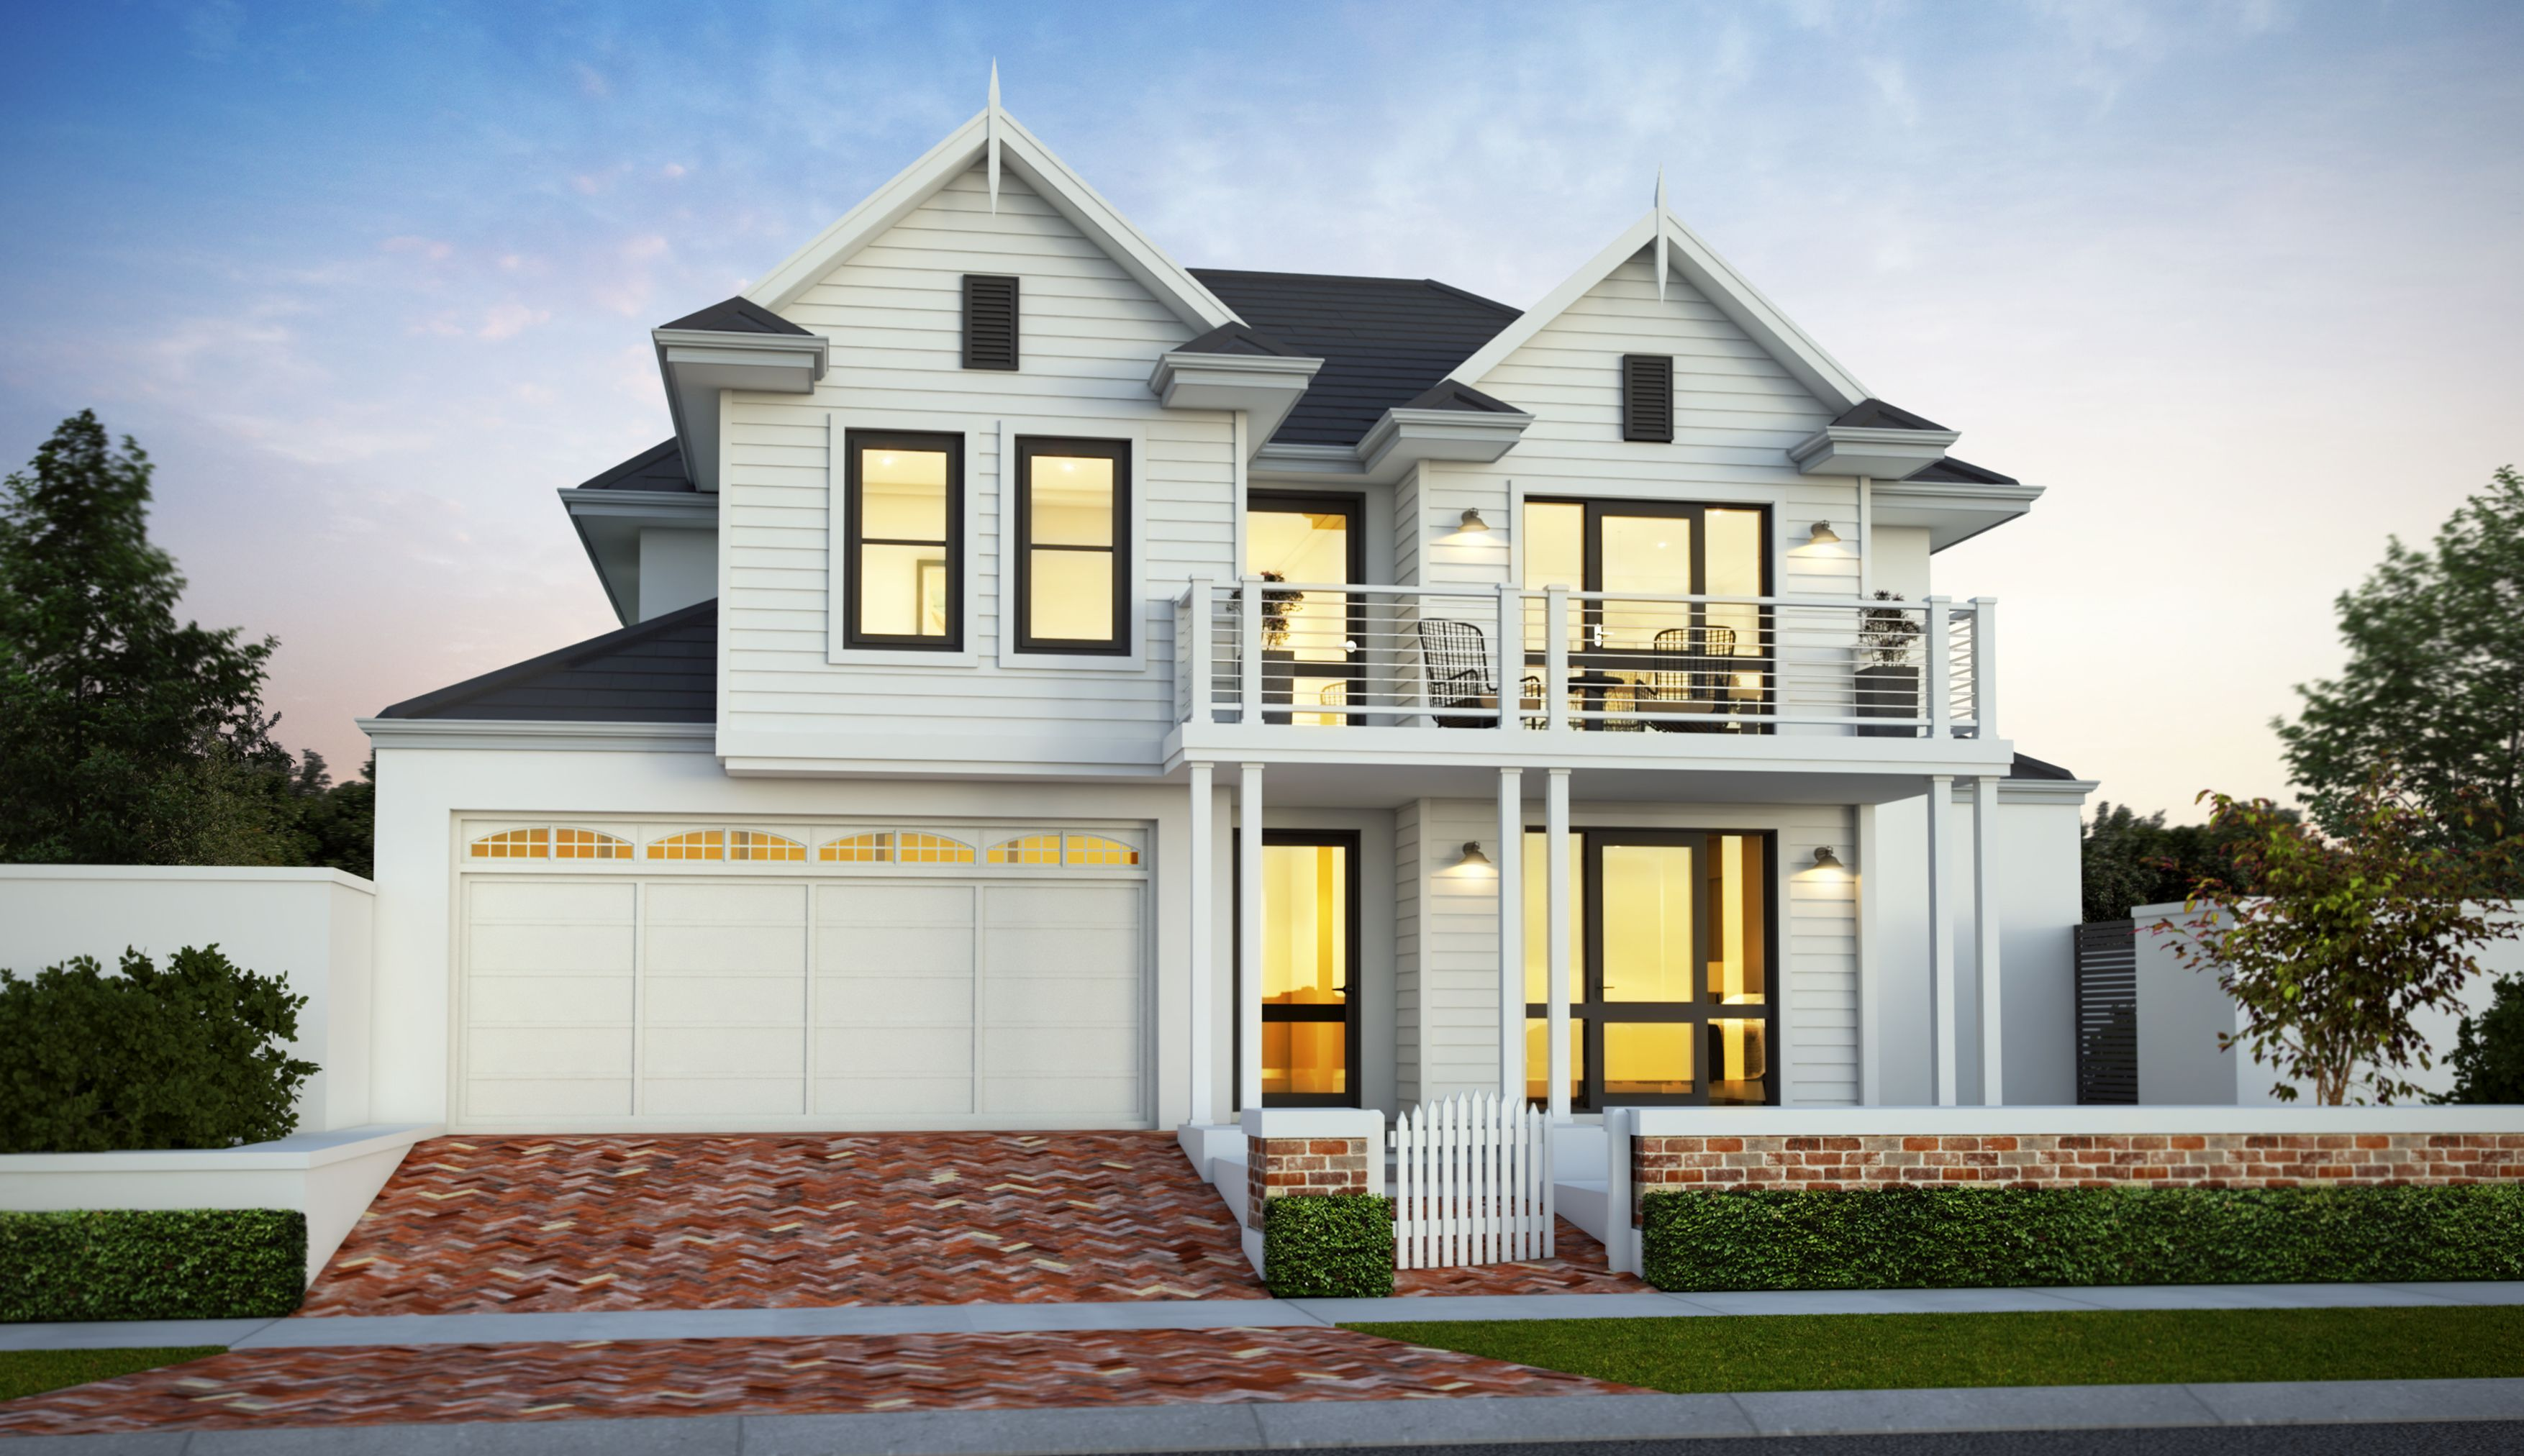 Maughan hampton style home perth for Hampton style house designs